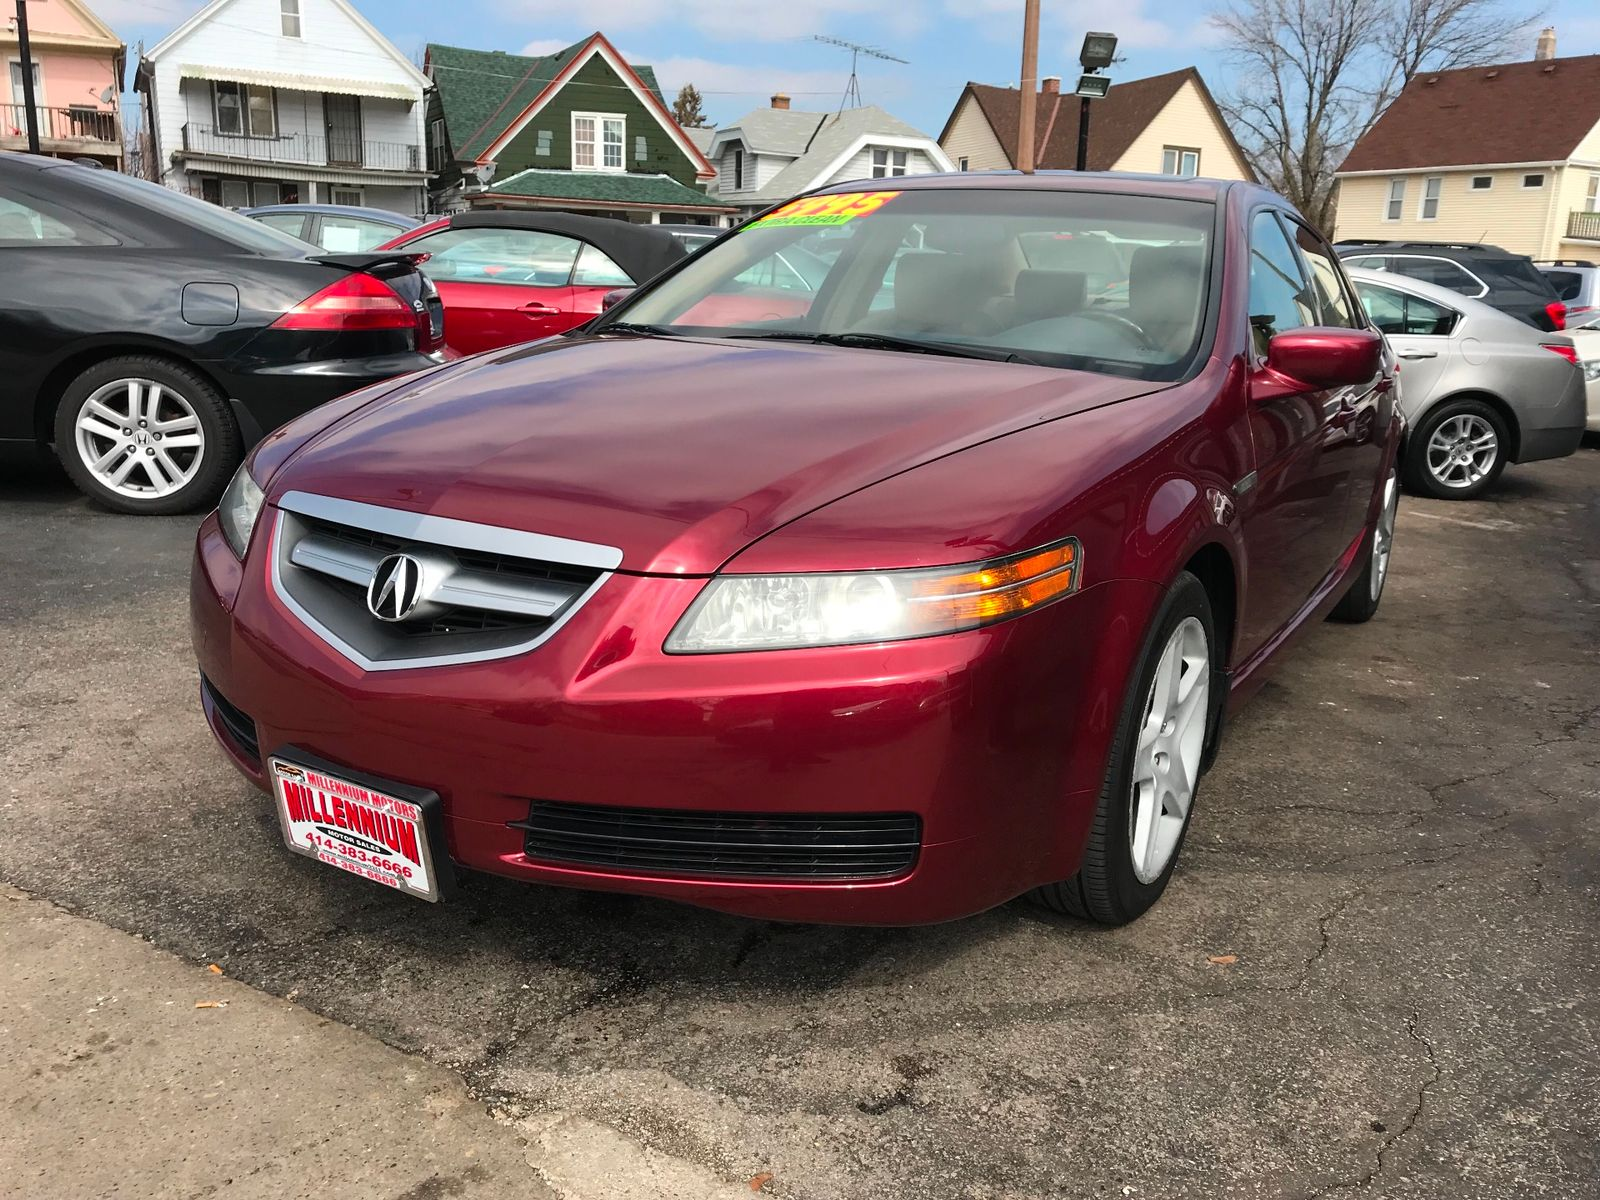 sales tl millennium of for wisconsin acura new motor city sale